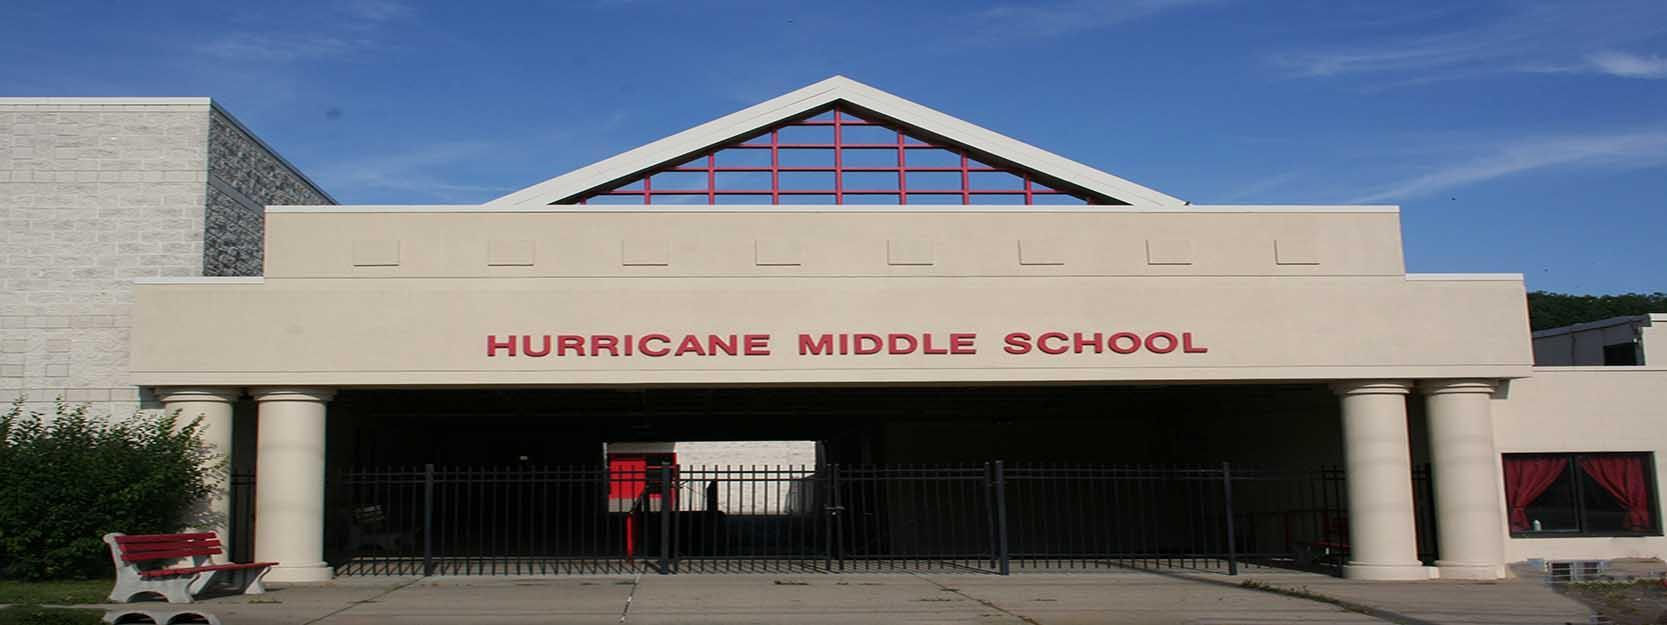 Hurricane Middle School Building